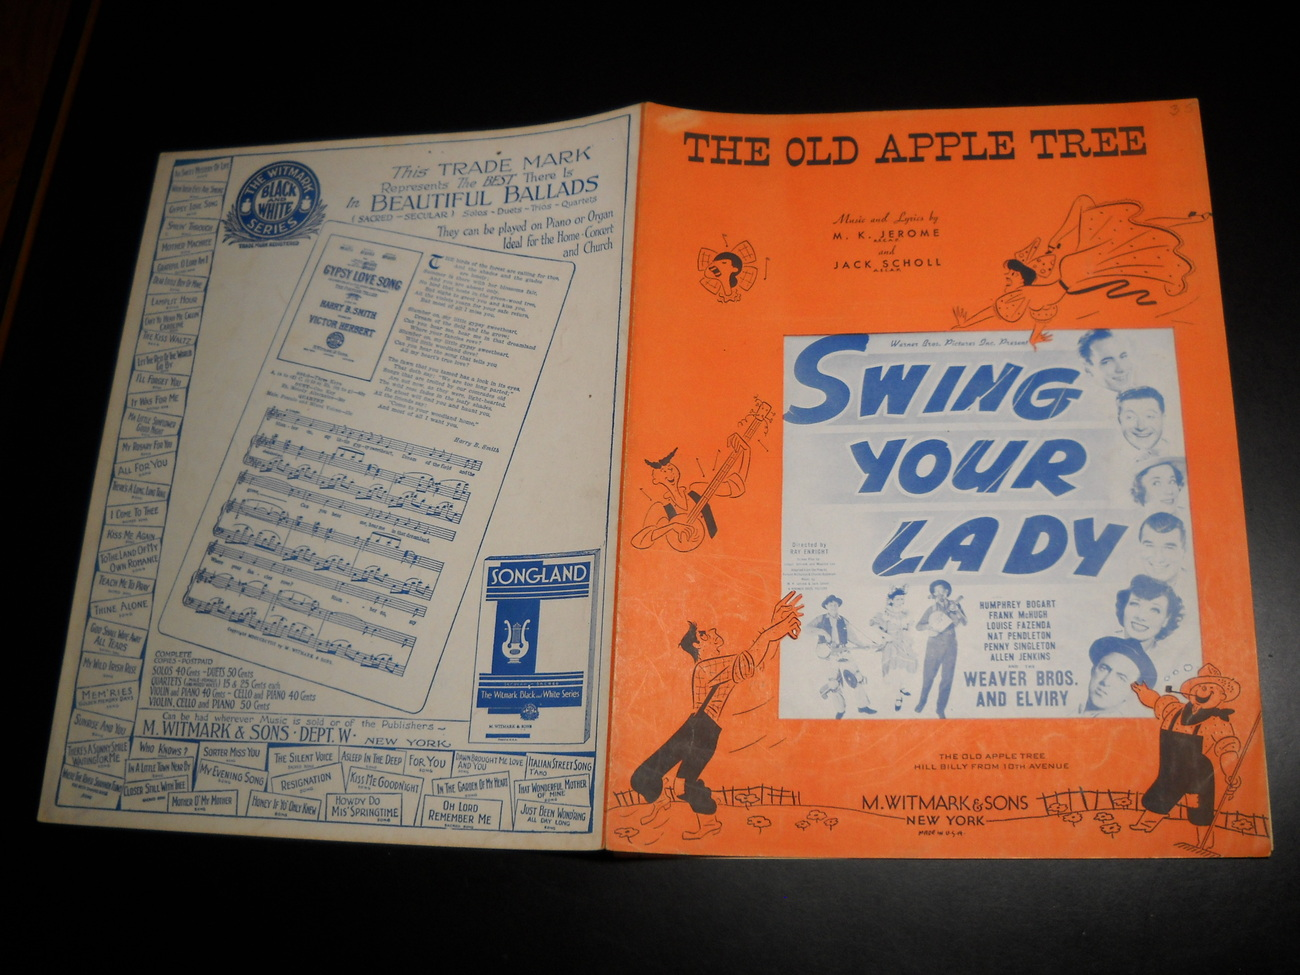 Sheet_music_the_old_apple_tree_swing_your_lady_humphrey_bogart_1938_m_witmark_04